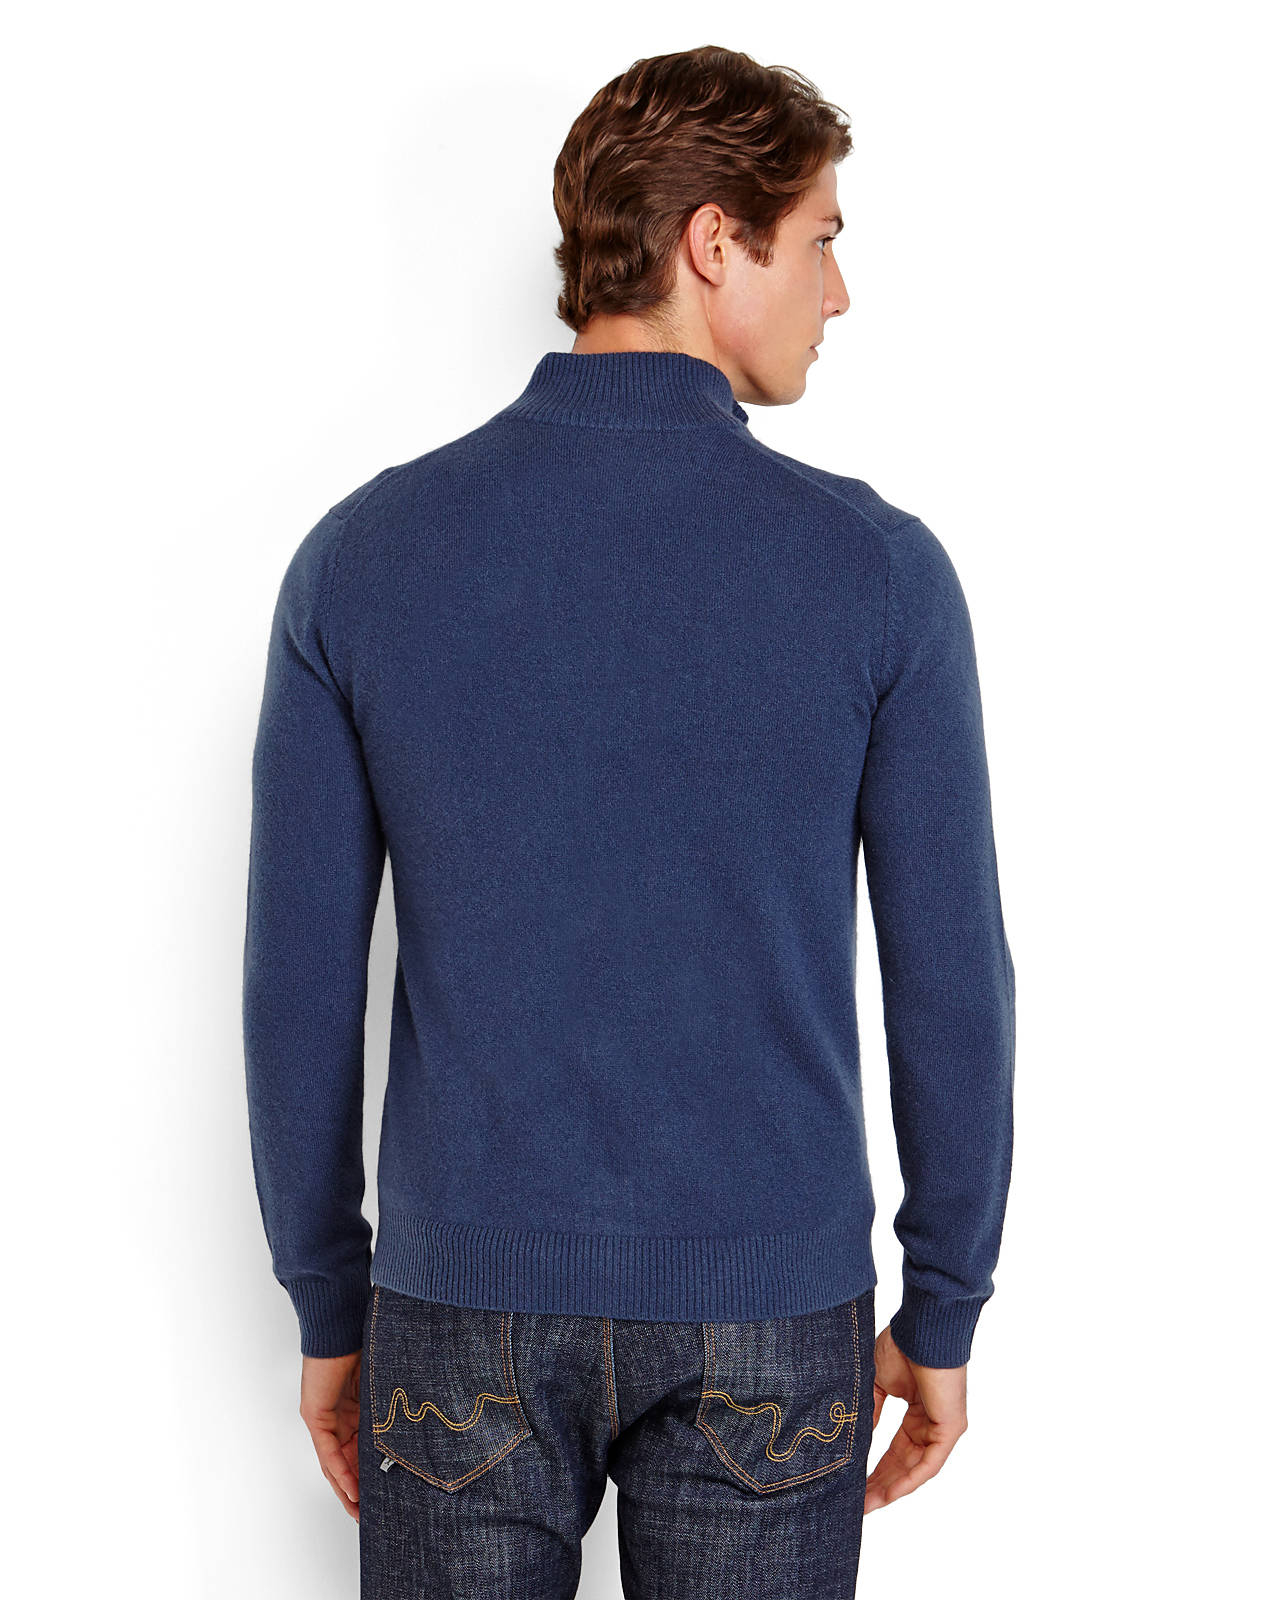 Shop italian cashmere sweater at Bergdorf Goodman, and enjoy free shipping and returns on the latest styles from top designers and luxury fashion brands.